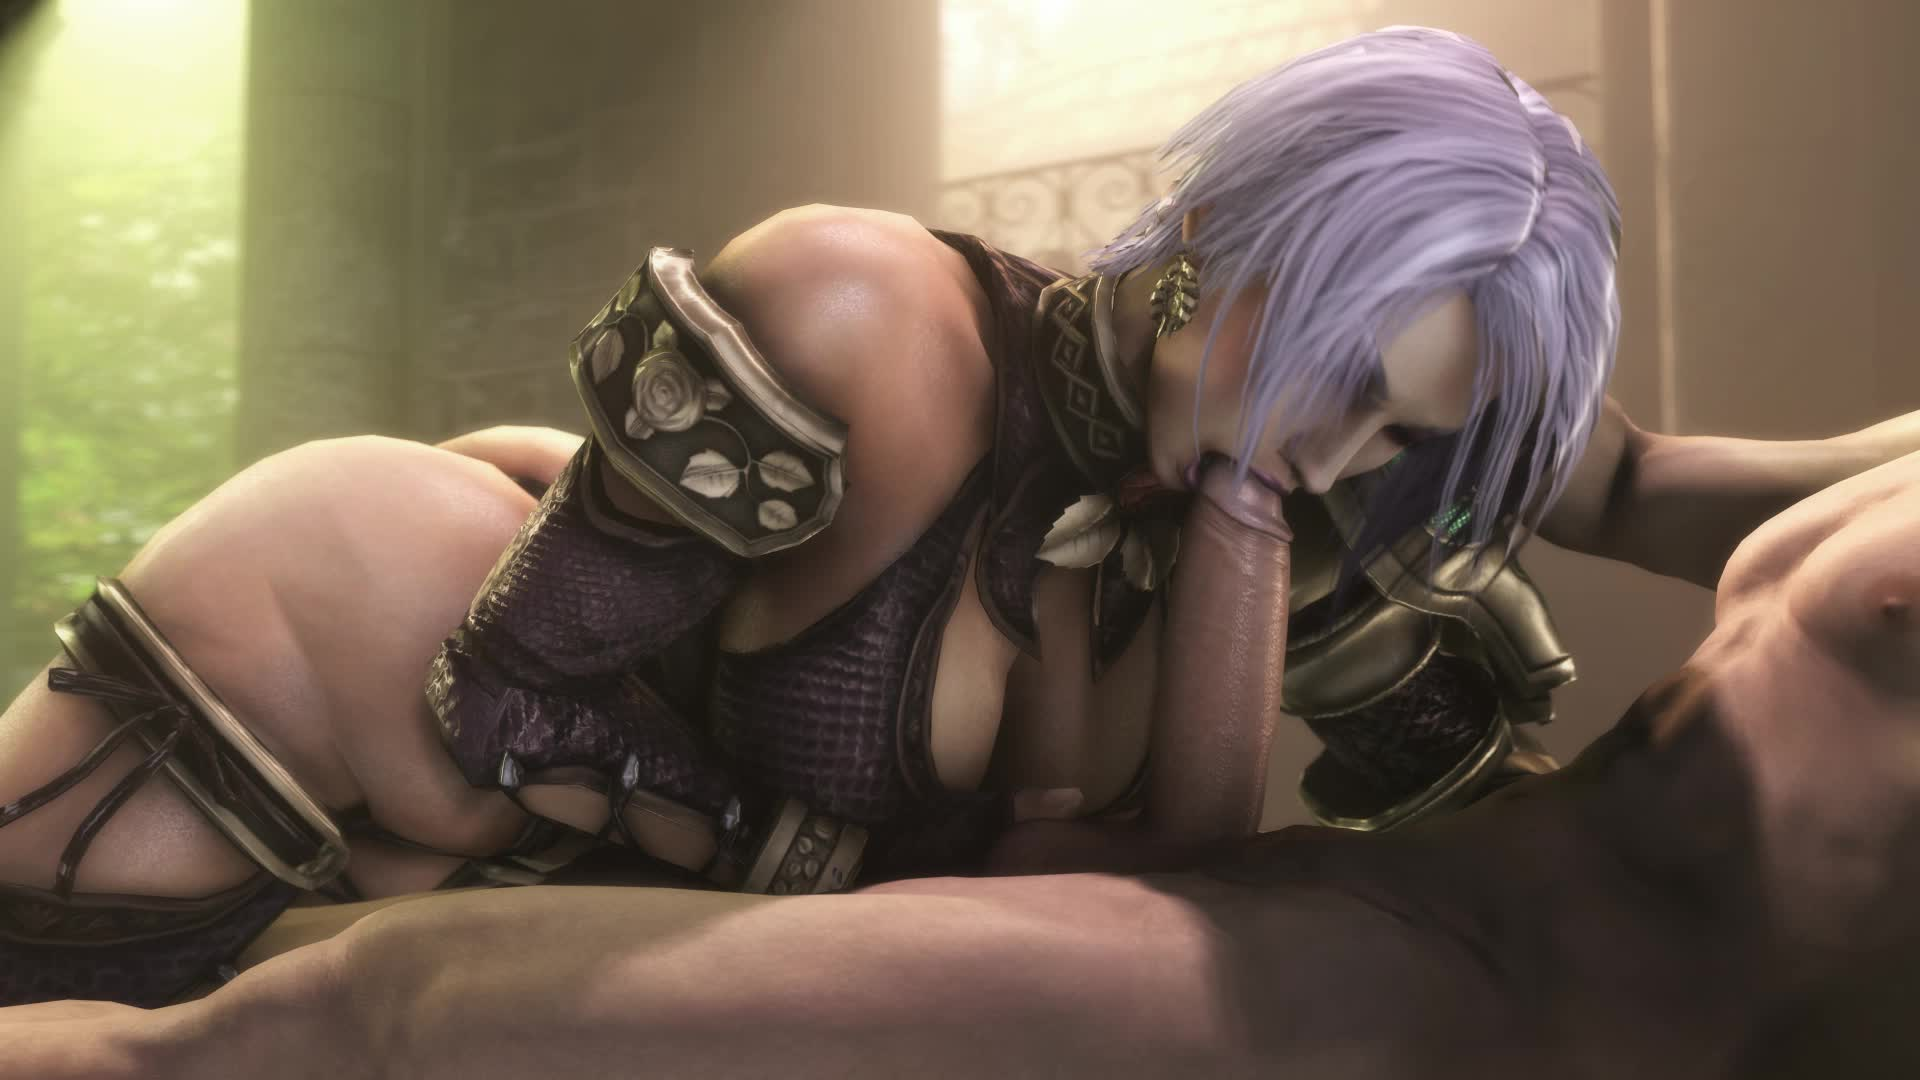 3D Animated Ivy_Valentine Soul_Calibur Sound Source_Filmmaker noname55 // 1920x1080 // 9.0MB // webm